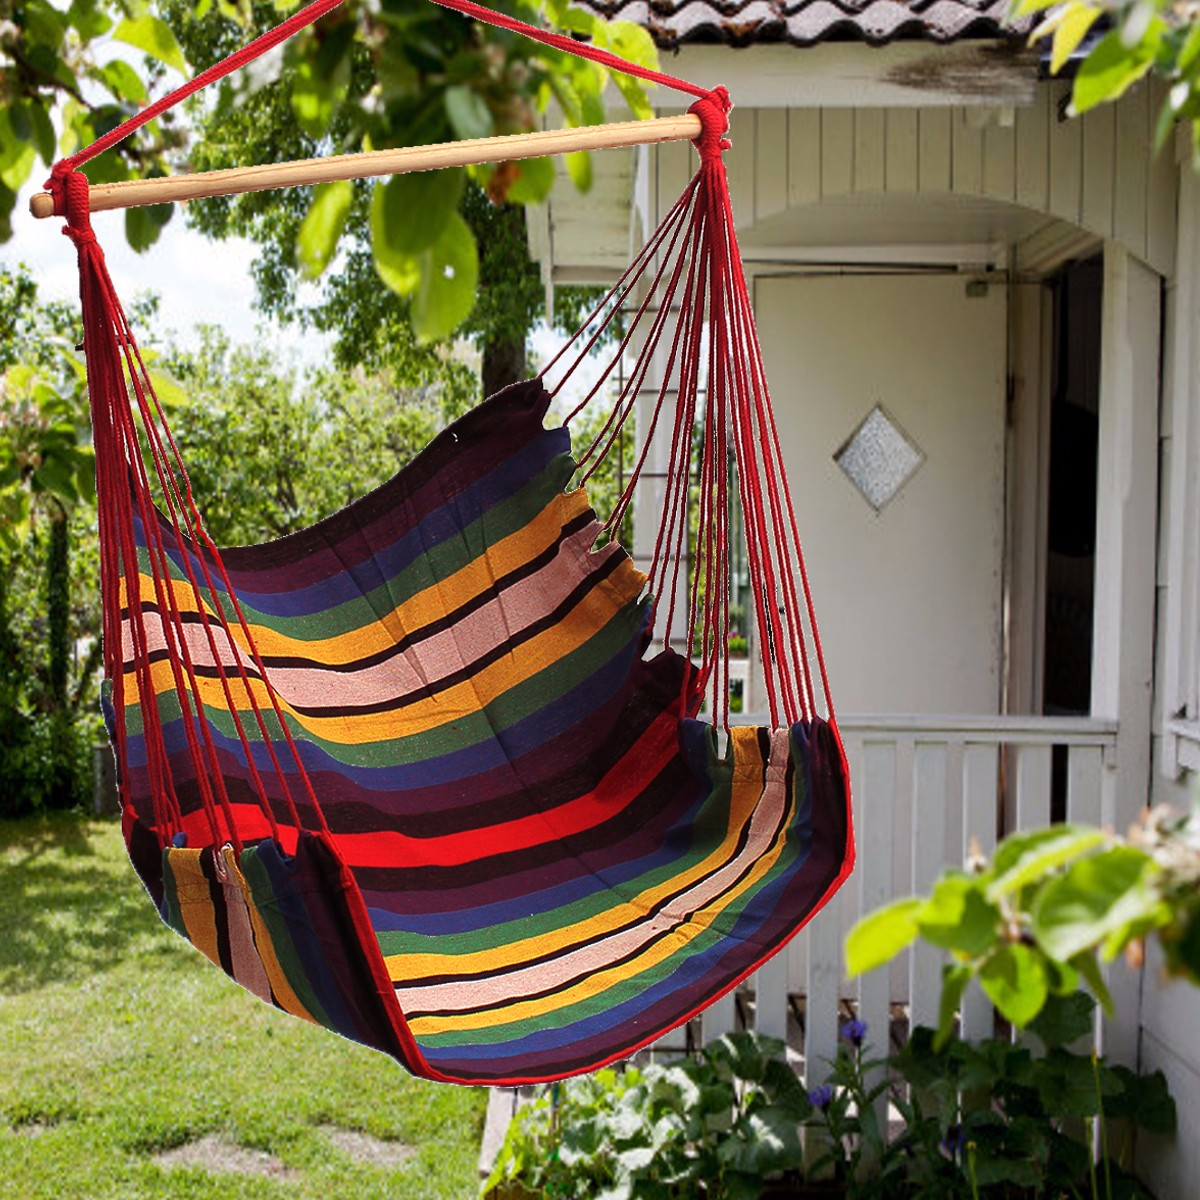 Garden Patio Hanging Thicken Hammock Chair Indoor Outdoor Cotton Swing Cushion Seat